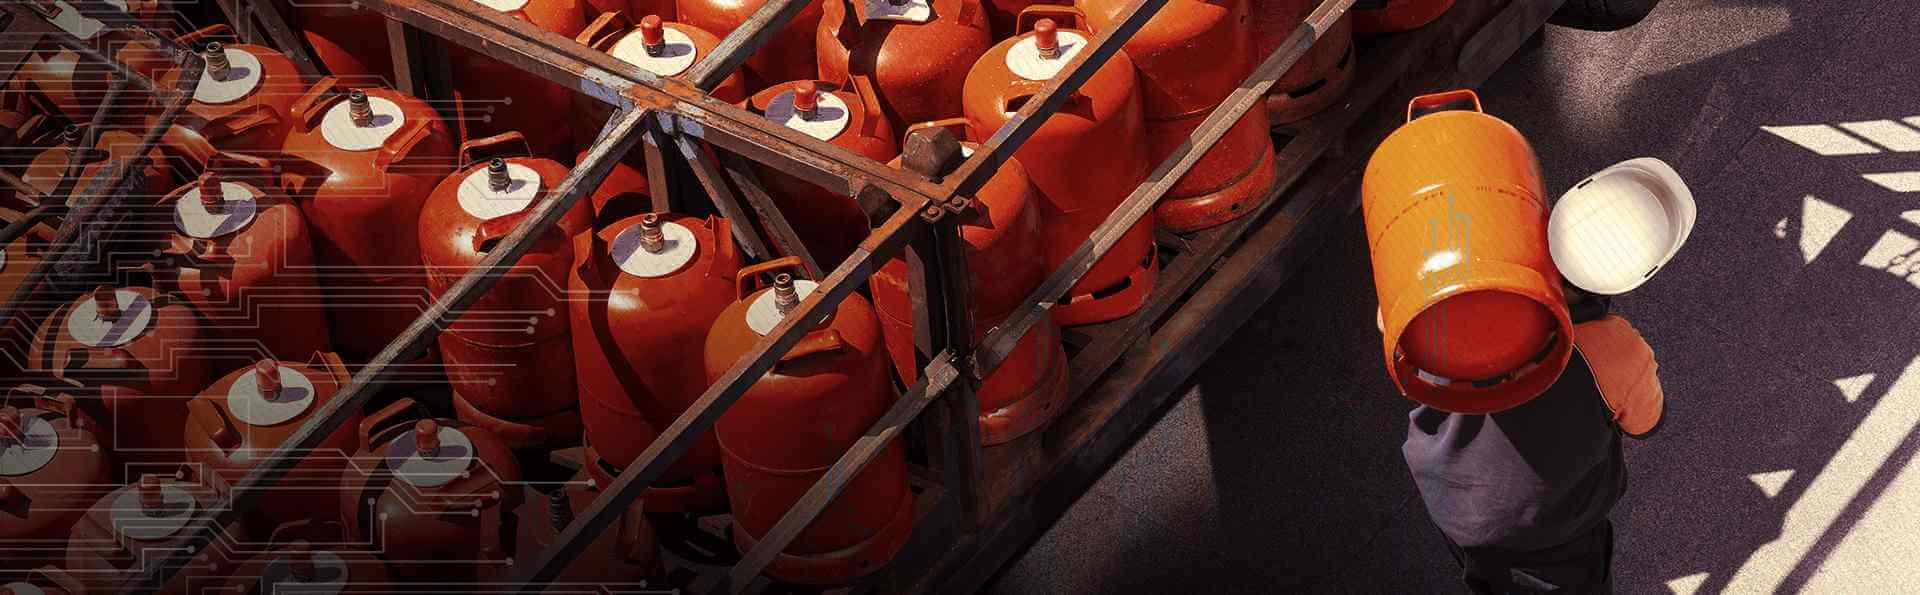 Digitizing the world's largest subsidy program: LPG cylinder delivery